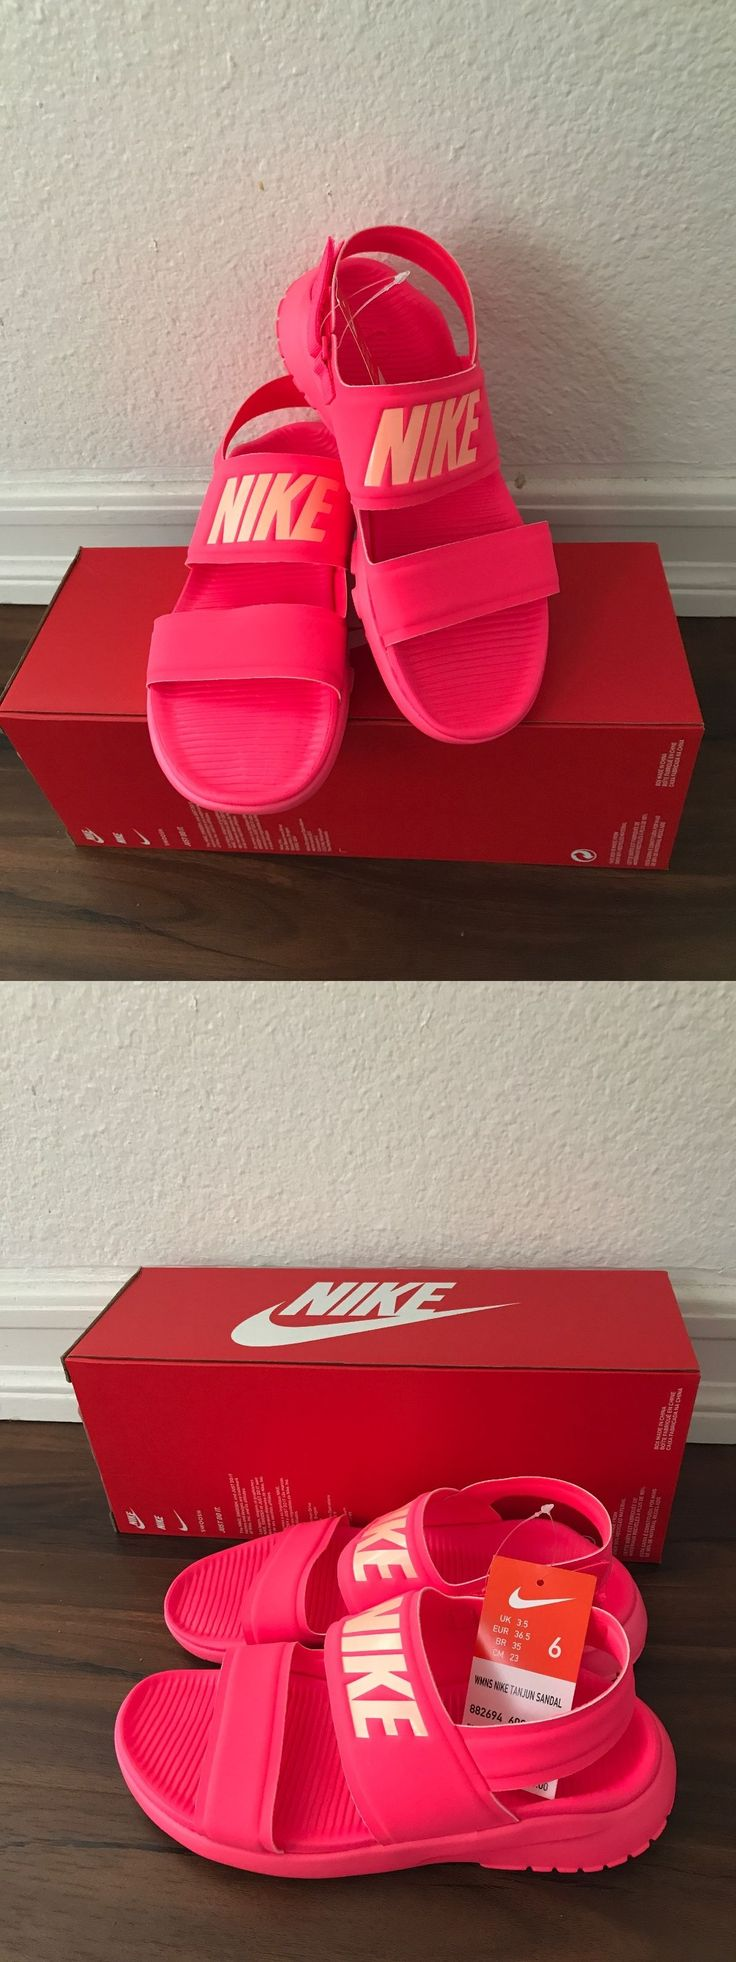 Sandals and Flip Flops 62107: New Nike Tanjun Sandal Racer Pink Women Casual Shoes Sandal 882694-600 Size 6 -> BUY IT NOW ONLY: $59.99 on eBay!